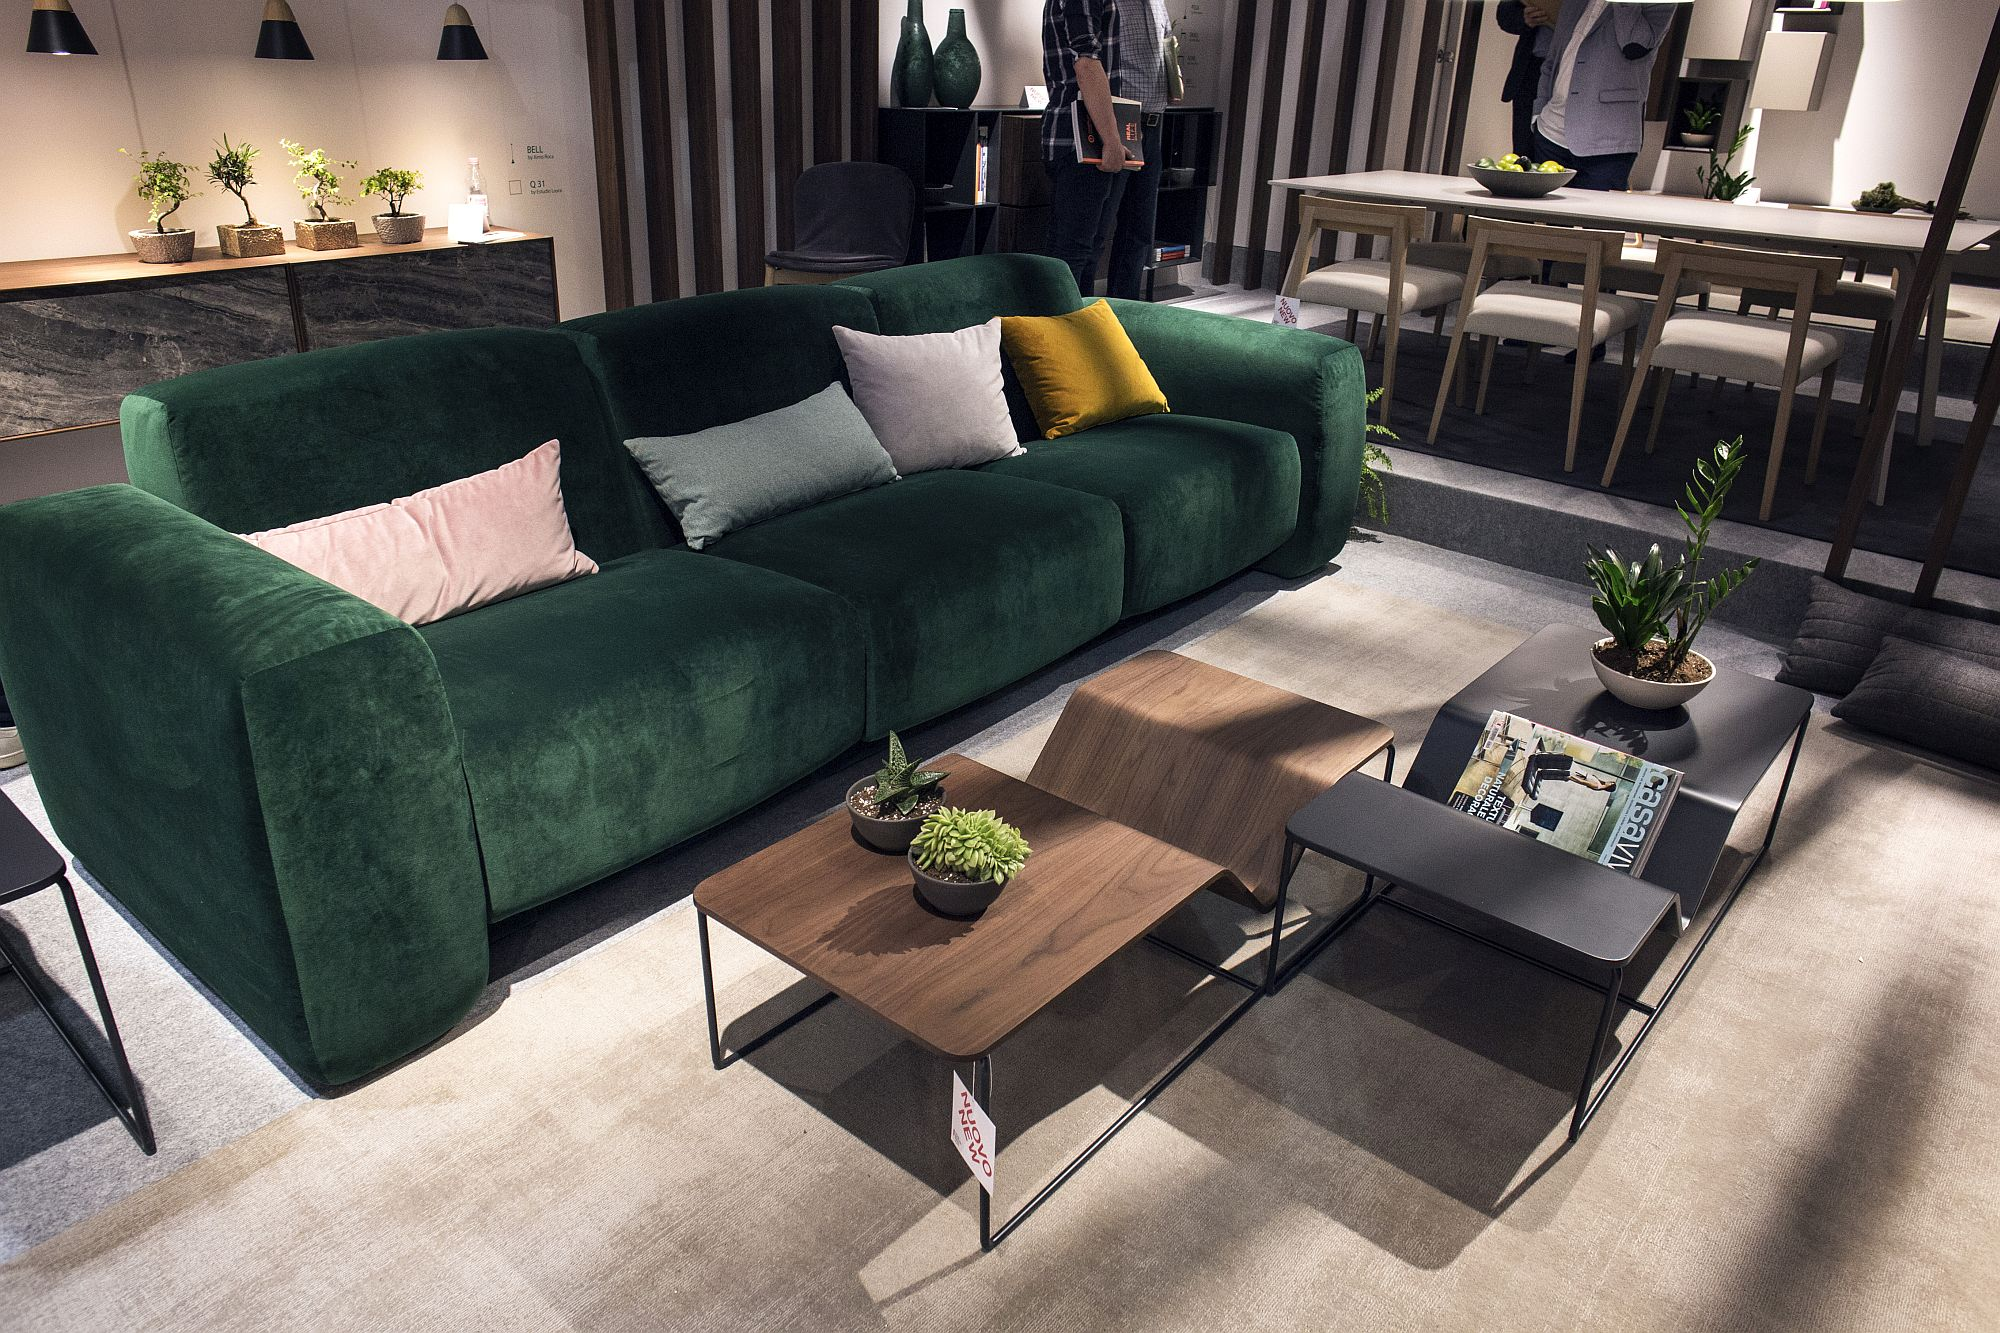 Comfy couch in bold green from Loyra Time